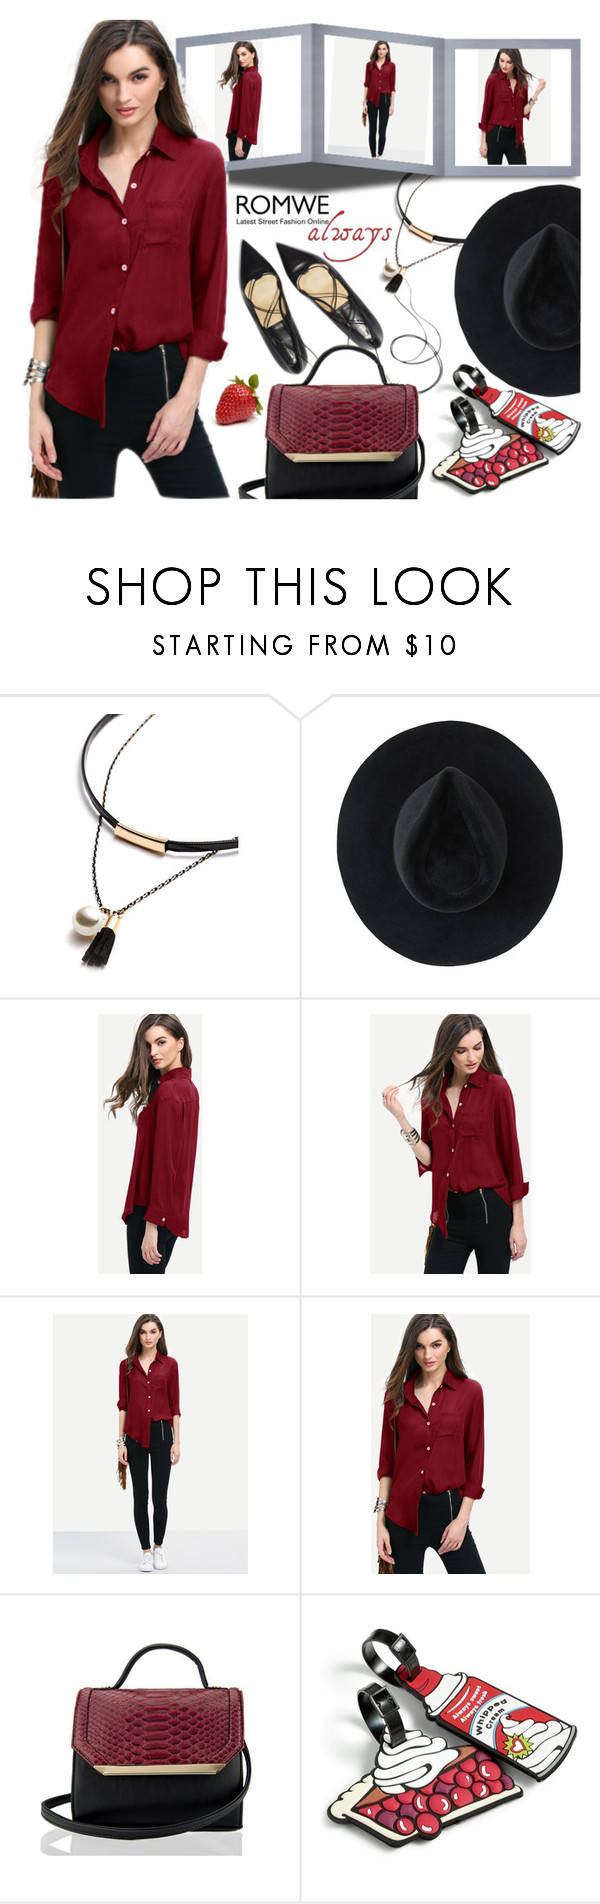 """""""Romwe contest: Burgundy Curved Hem Pocket Shirt"""" by aleksandra985 ❤ liked on Polyvore featuring Ryan Roche, Handle and Betsey Johnson"""